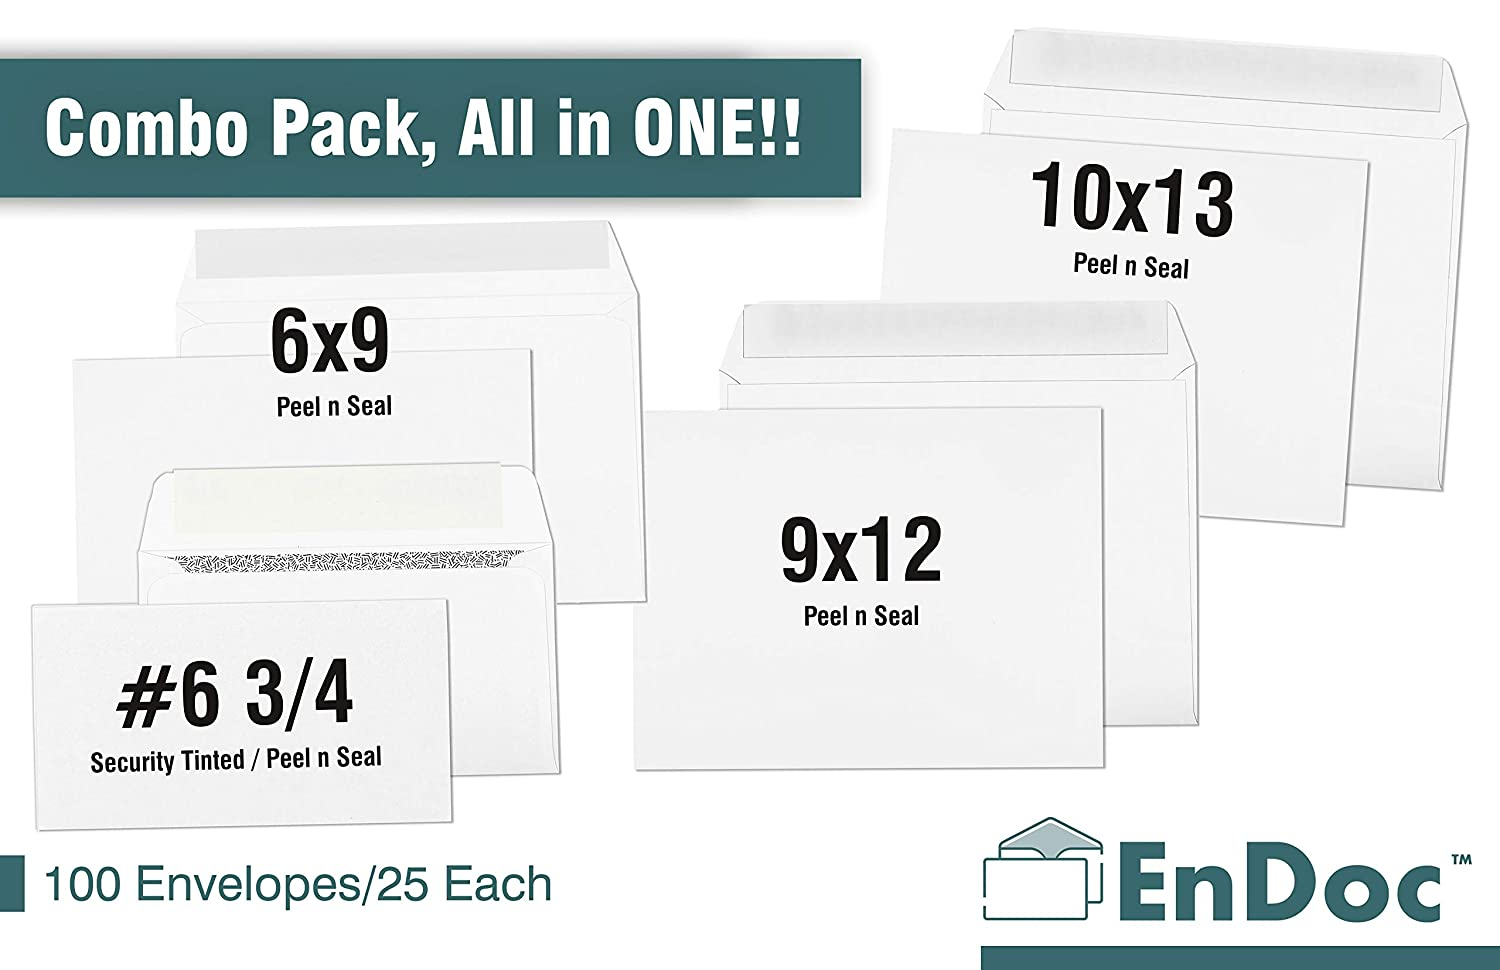 10x13, 9x12, 6x9 Self Seal, 6 3/4 Security Tinted Envelopes Assorted 25 Each Bright White Color – Office Envelopes Bulk Variety Pack – Desk Storage Box – 100 Count Total Booklet